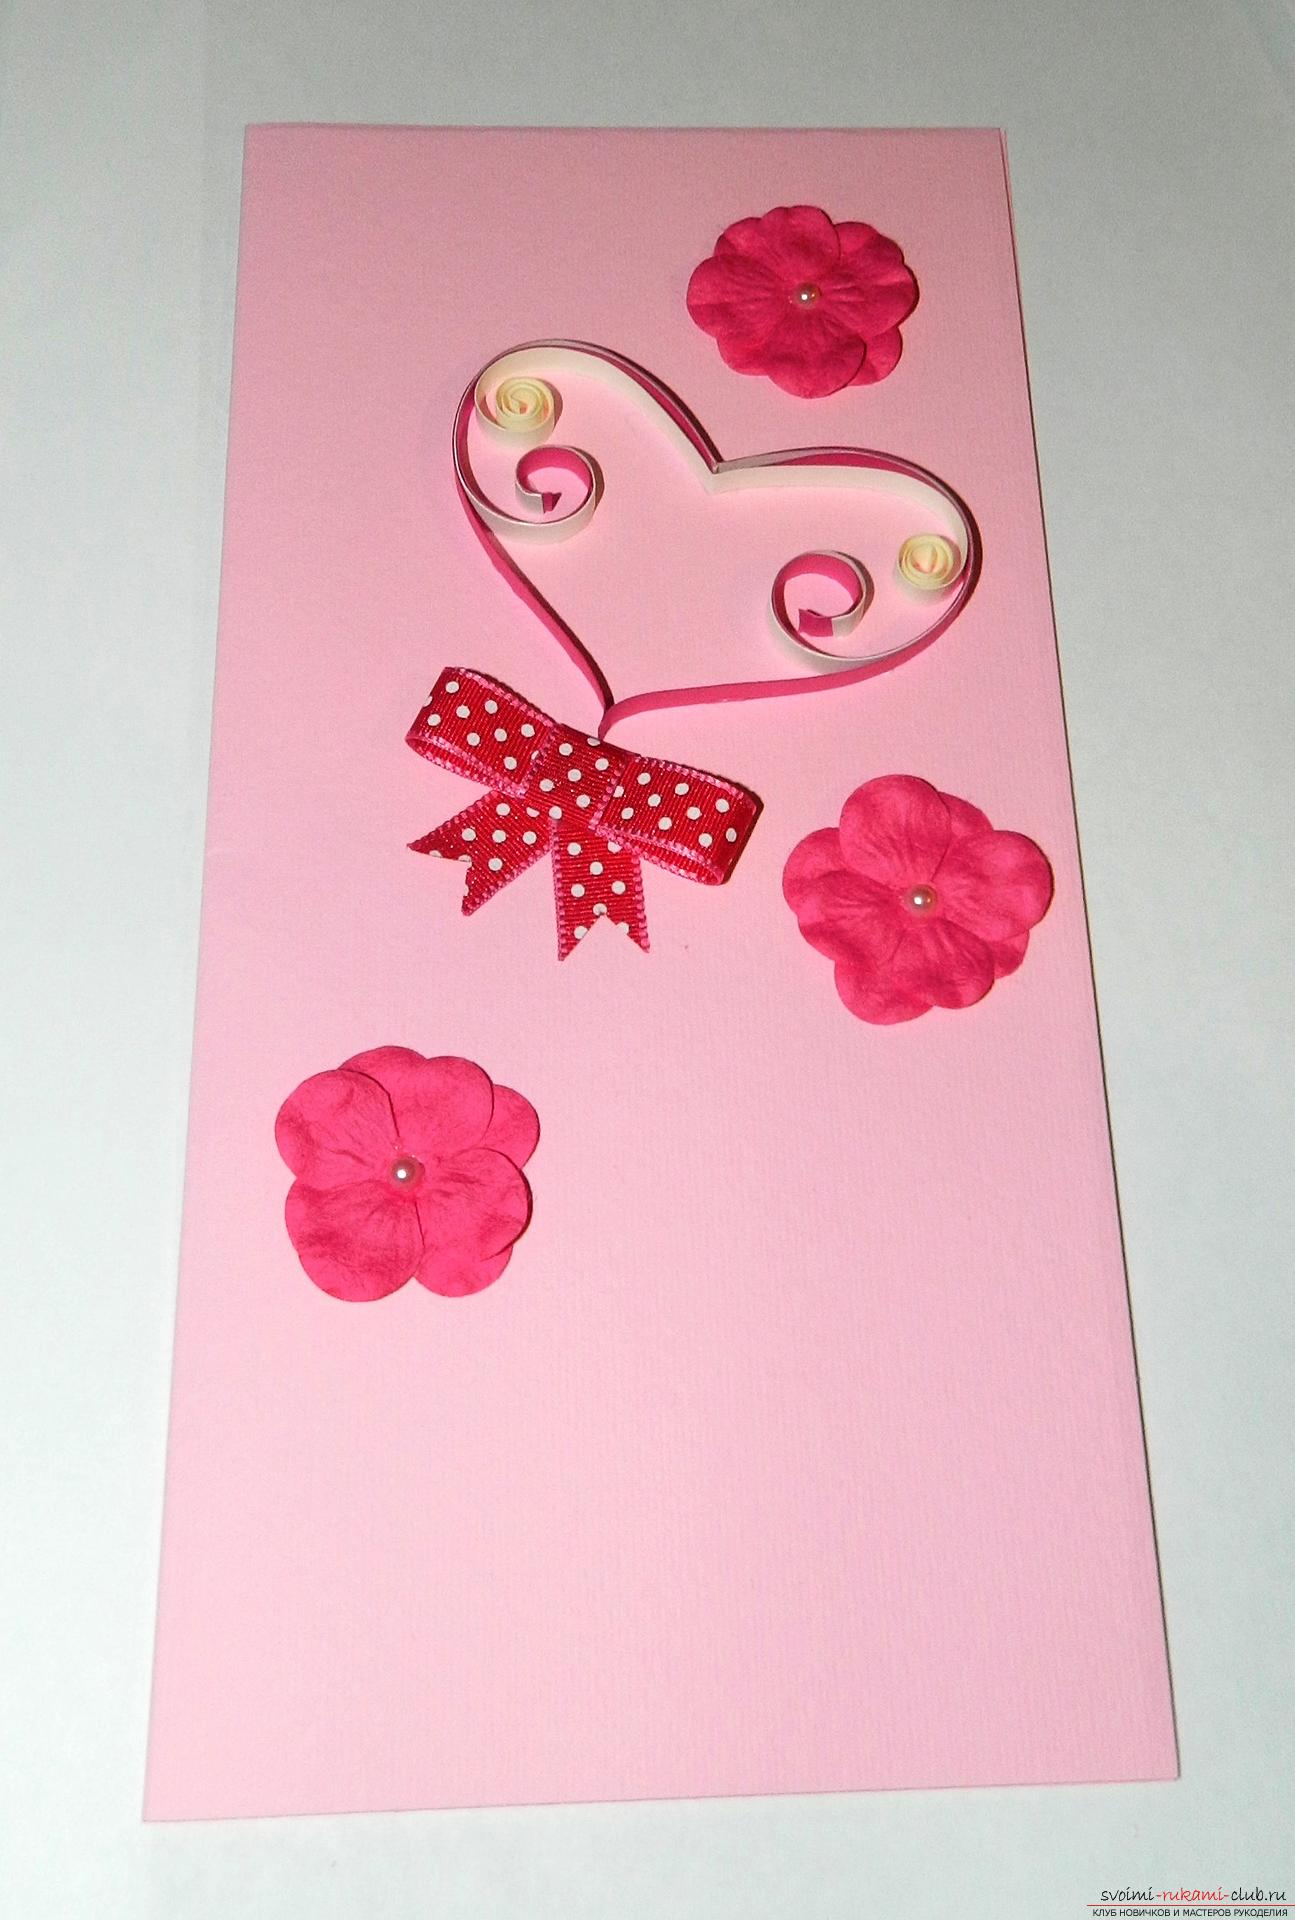 This master class will teach you how to make a postcard with your own hands in the technique of quilling technique. Photo # 25